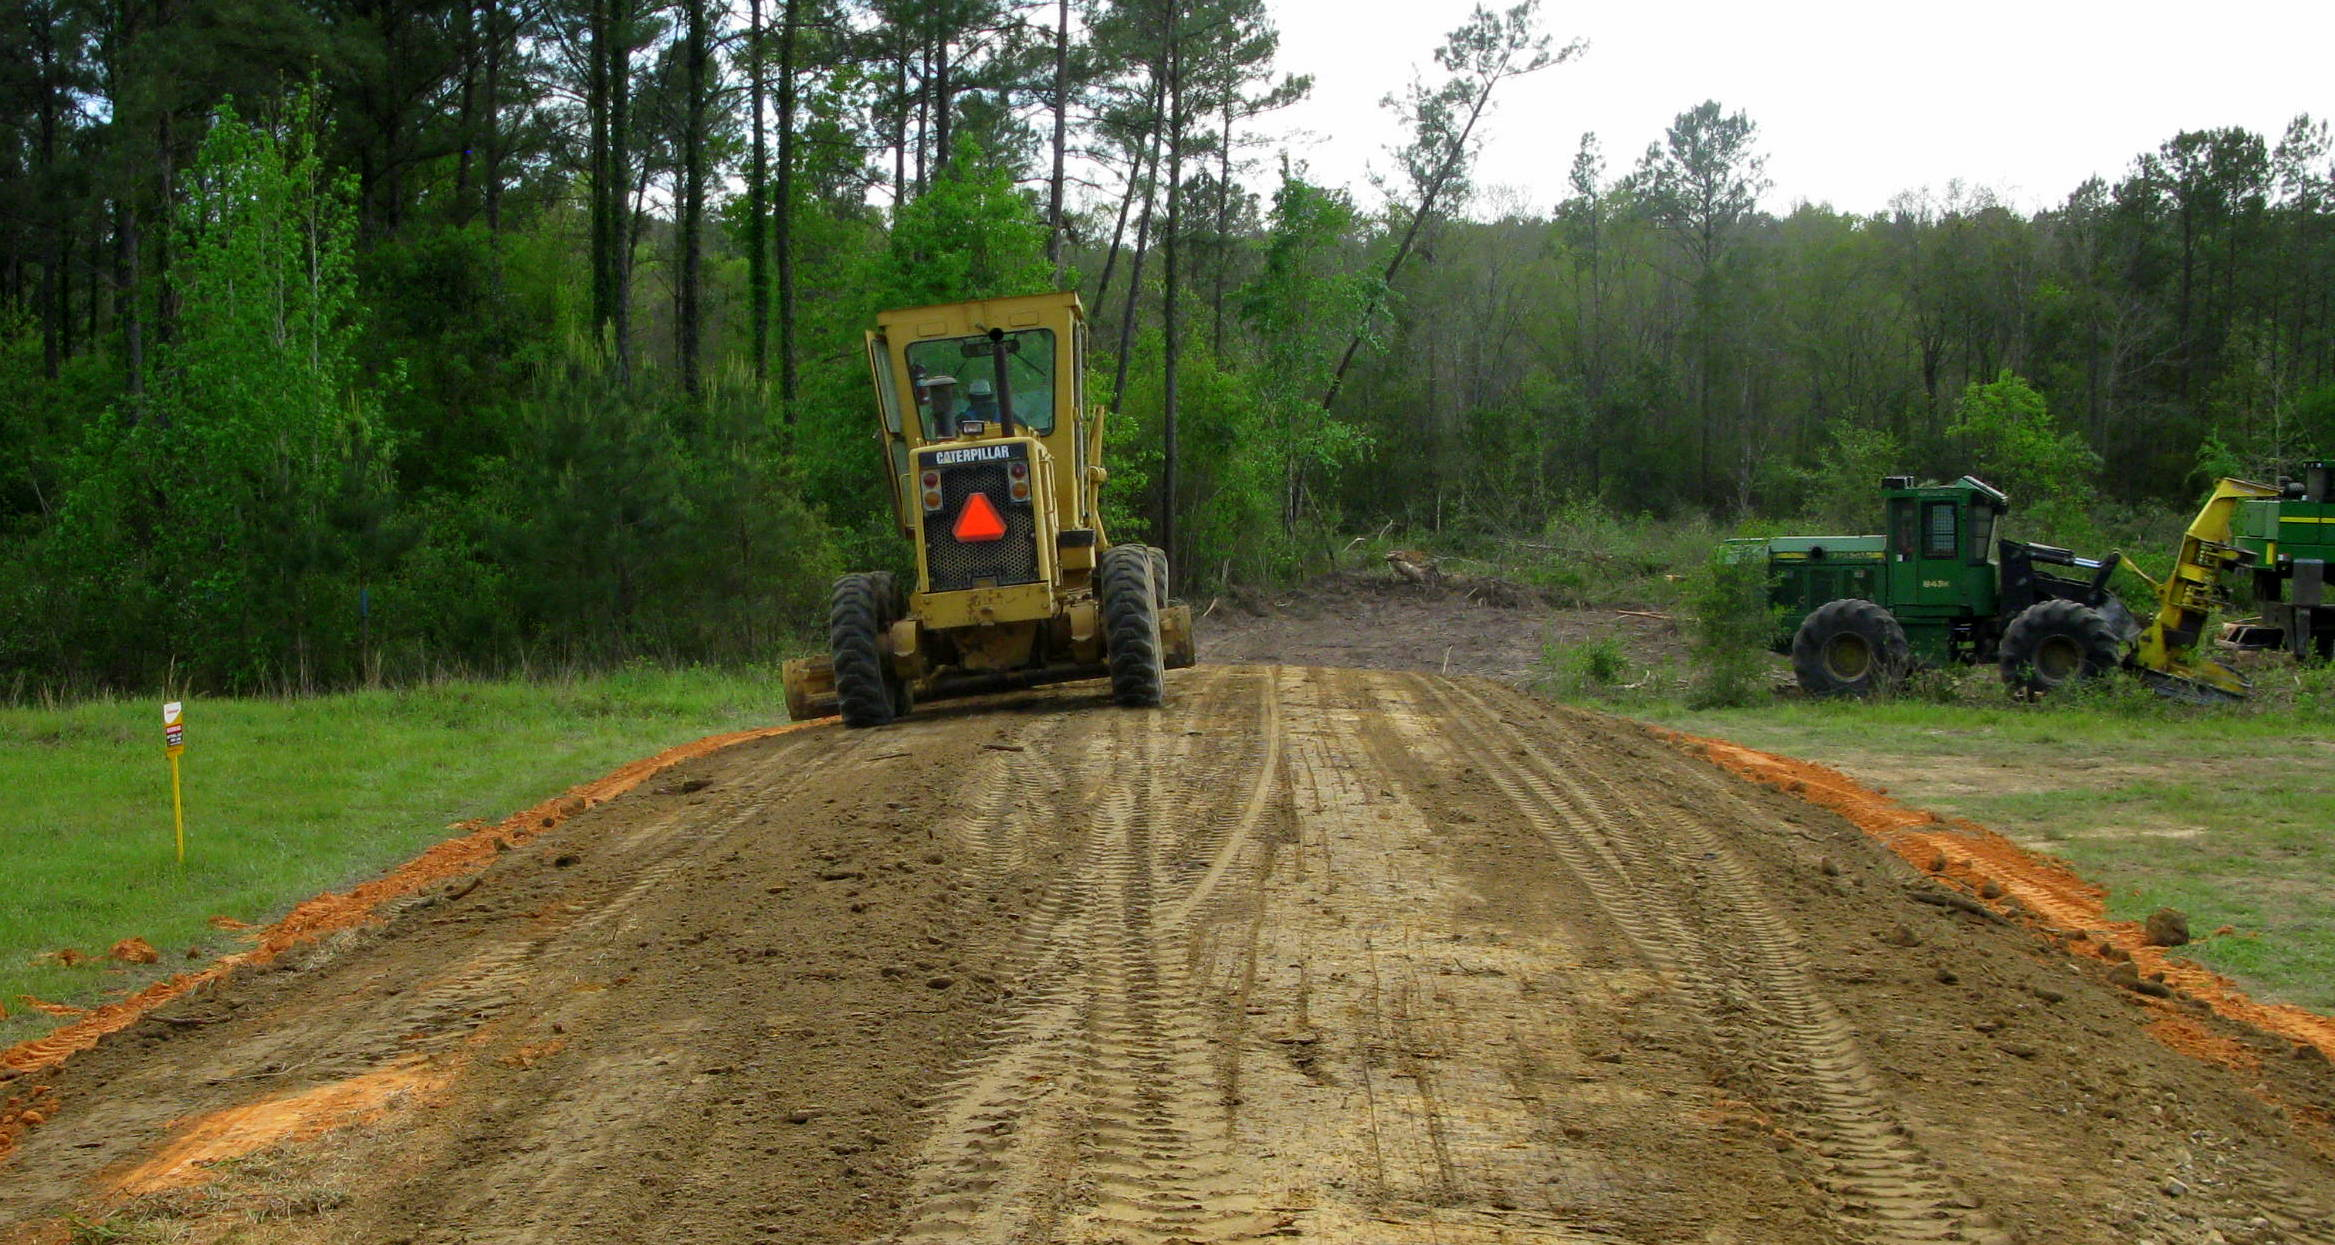 Grading roads and driveways